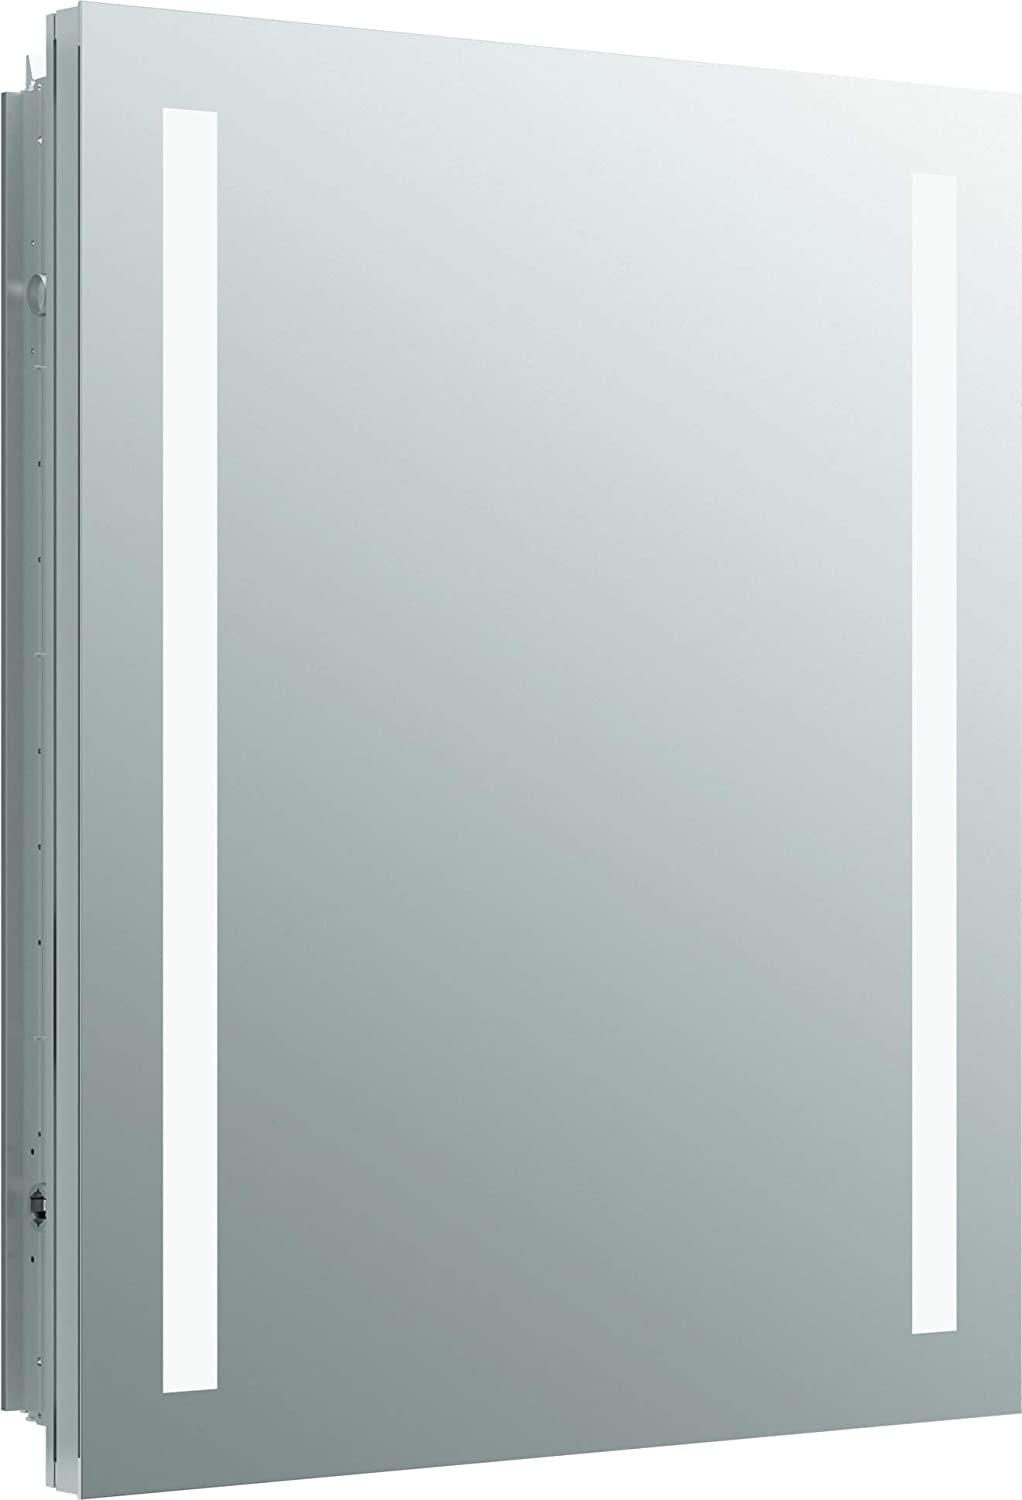 Kohler 99007-TLC-NA Verdera Lighted Medicine Cabinet, Aluminum